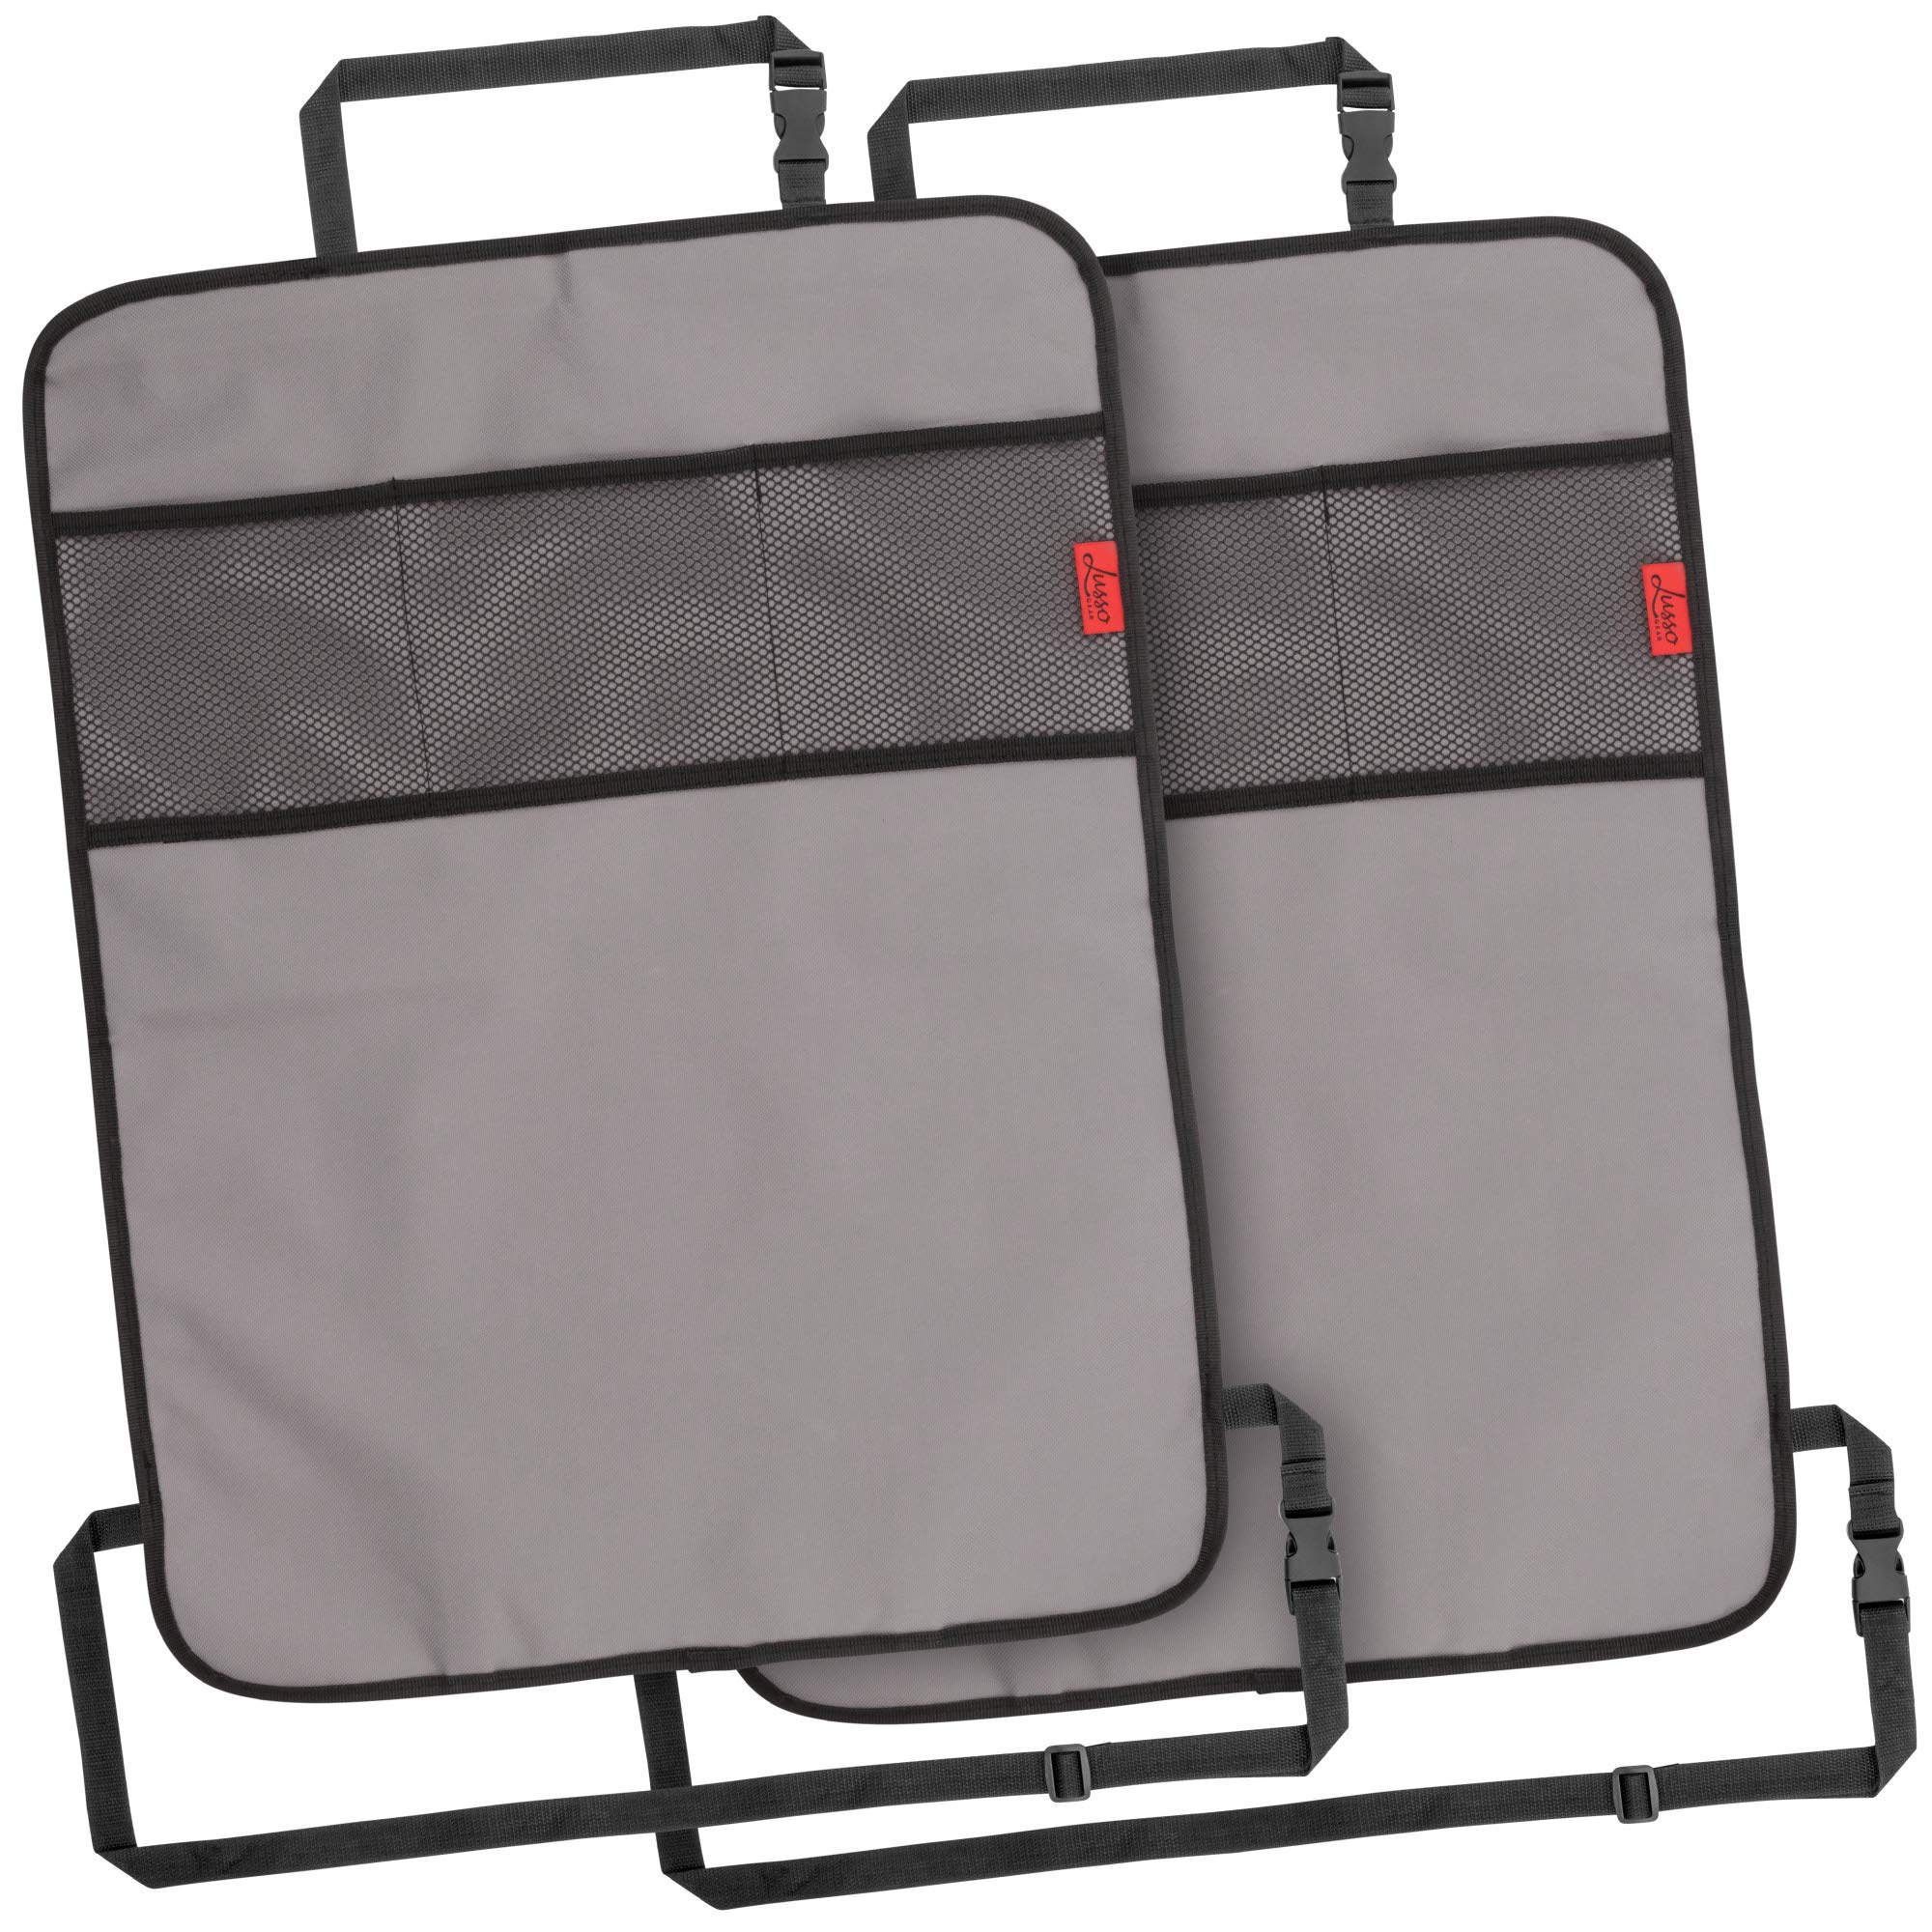 Heavy Duty Kick Mats Back Seat Protector (2 Pack) - The Sag Proof, Waterproof, Odor Proof Car Back Seat Cover for Kids Who Make Big Messes | 3 Reinforced Mesh Storage Pockets, Premium Oxford Fabric by Lusso Gear